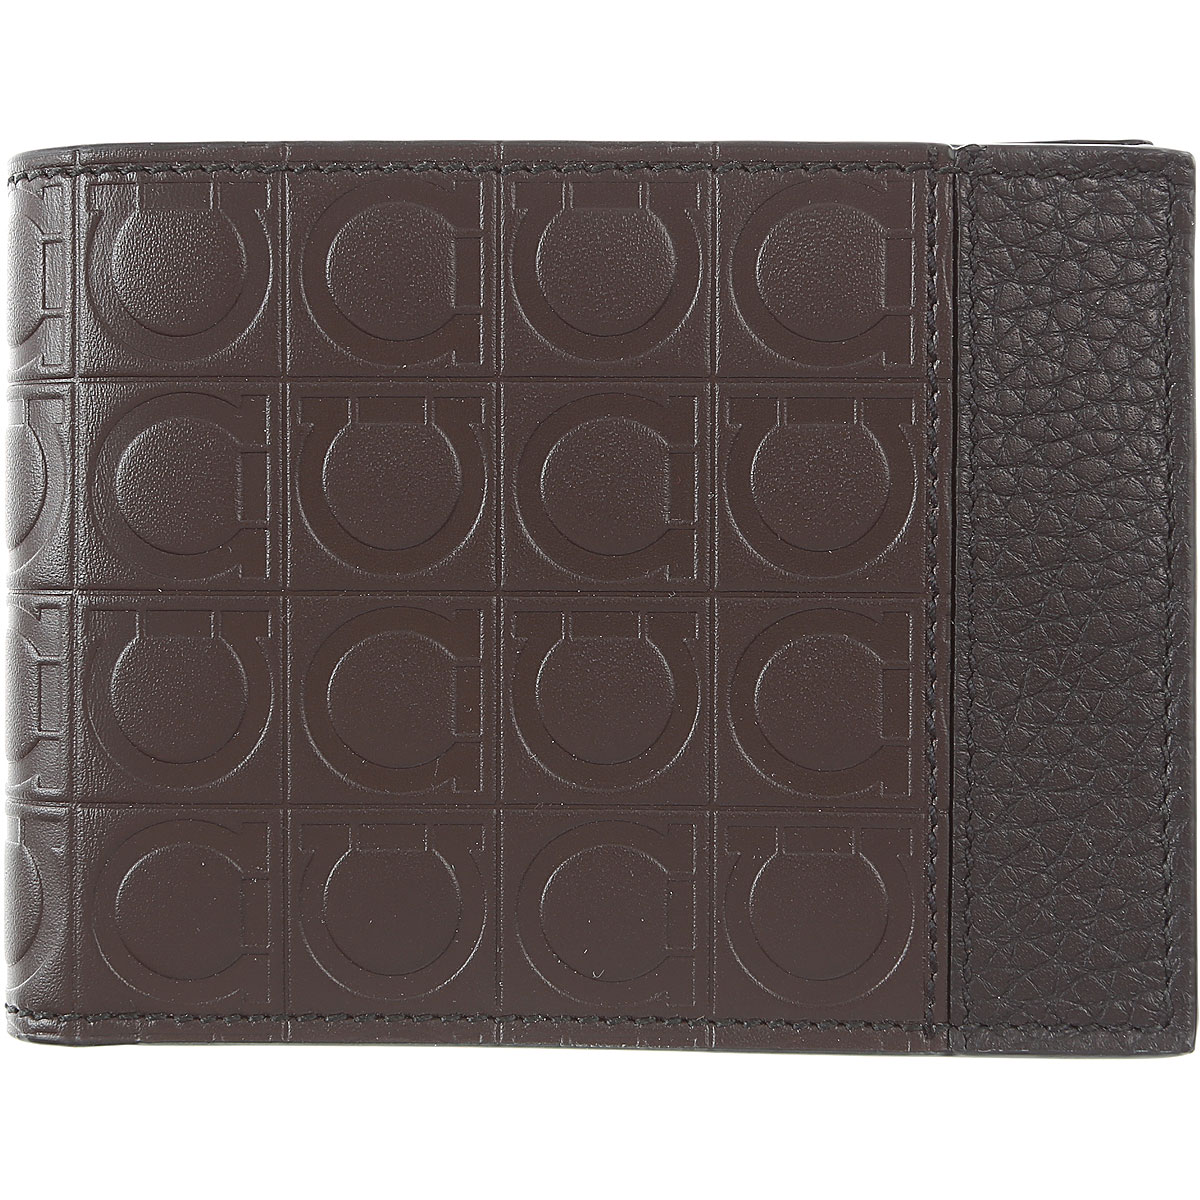 Salvatore Ferragamo Wallet for Men Brown USA - GOOFASH